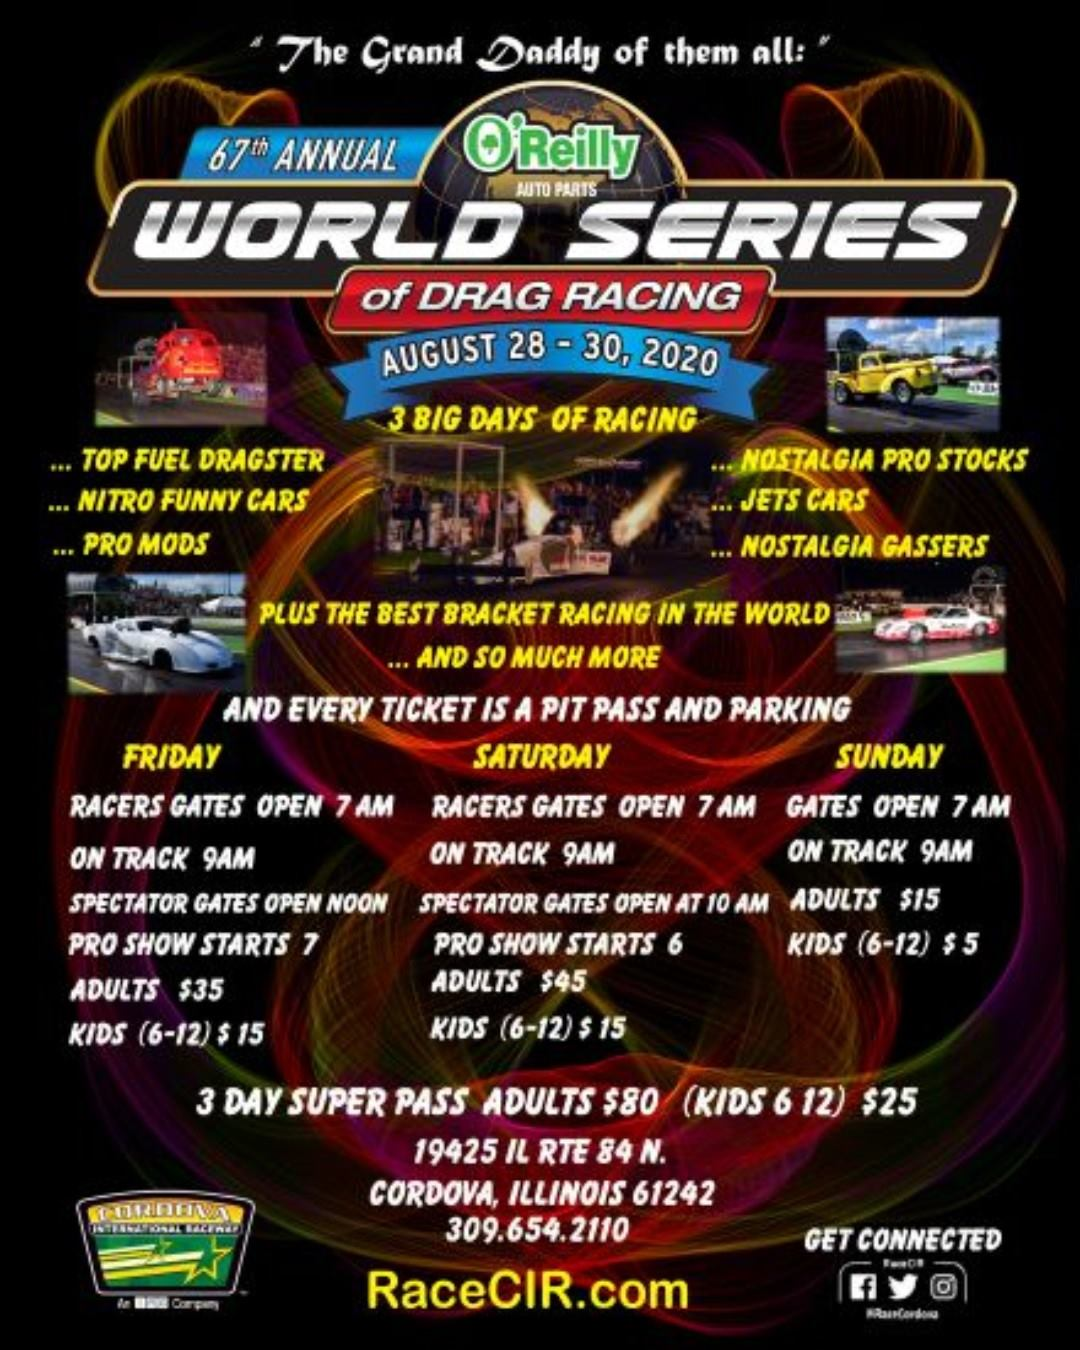 World Series of Drag Racing @ Cordova International Raceway